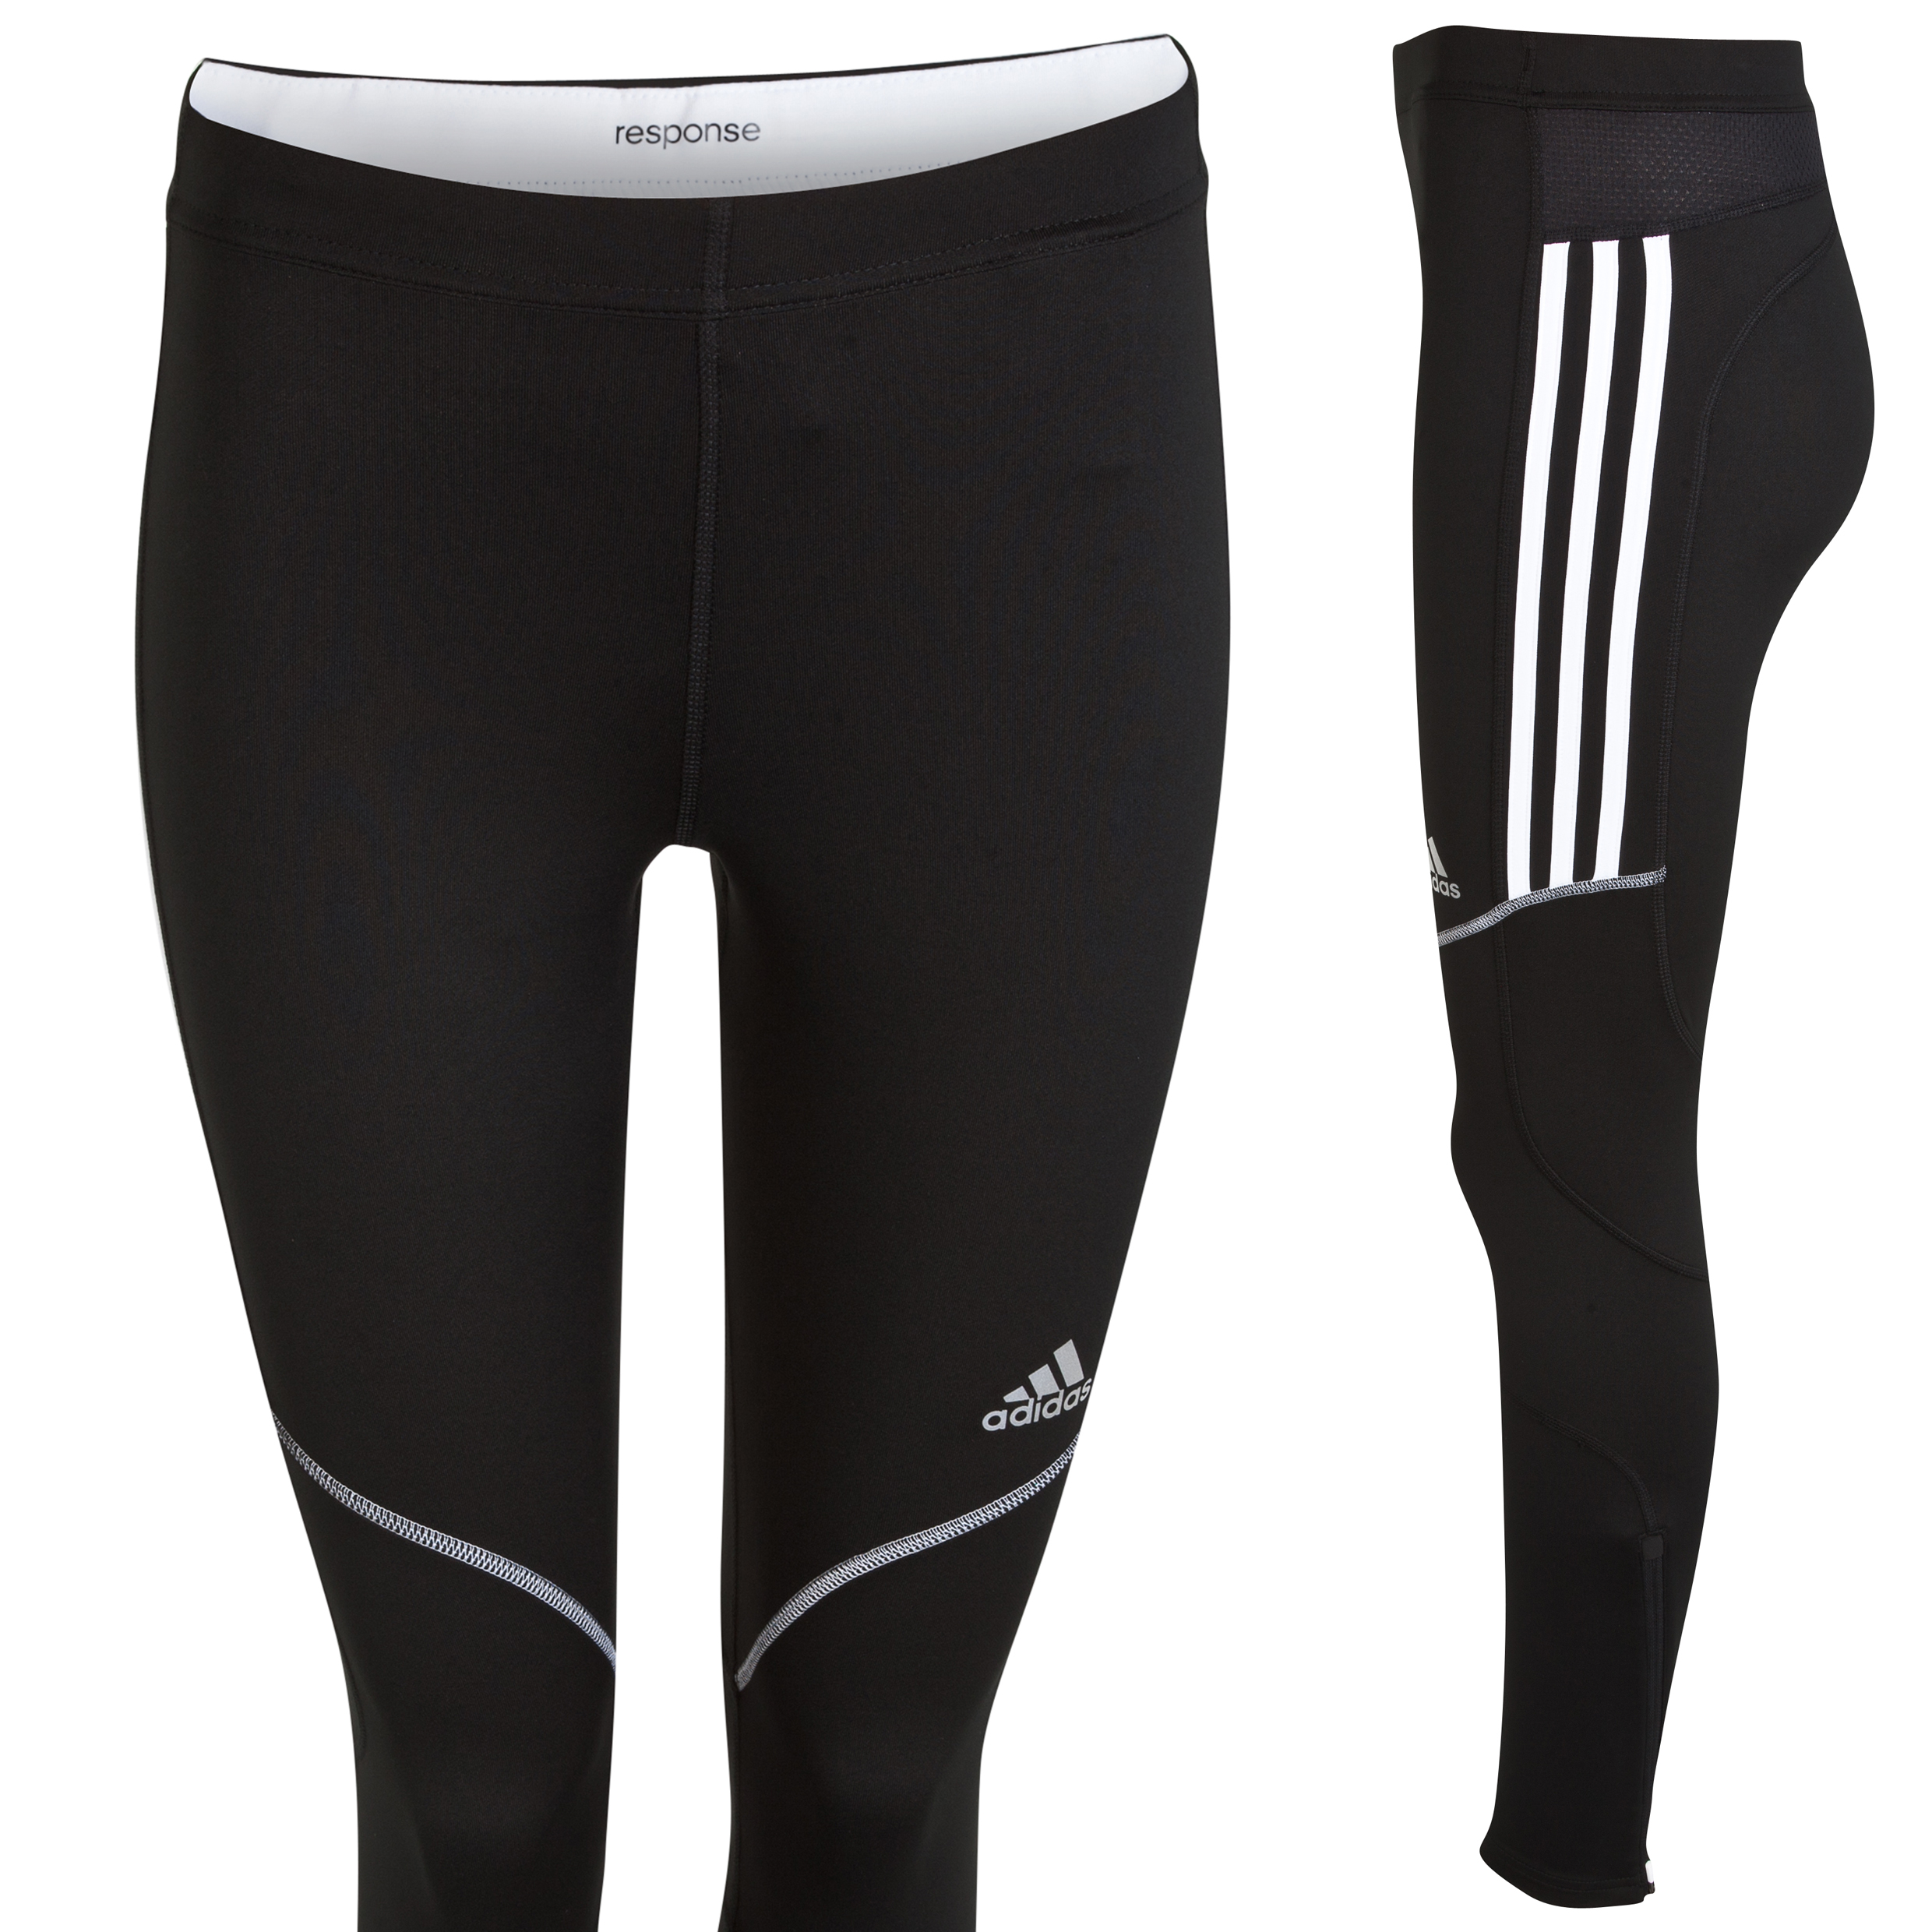 Adidas Response Tight - Black/White Black